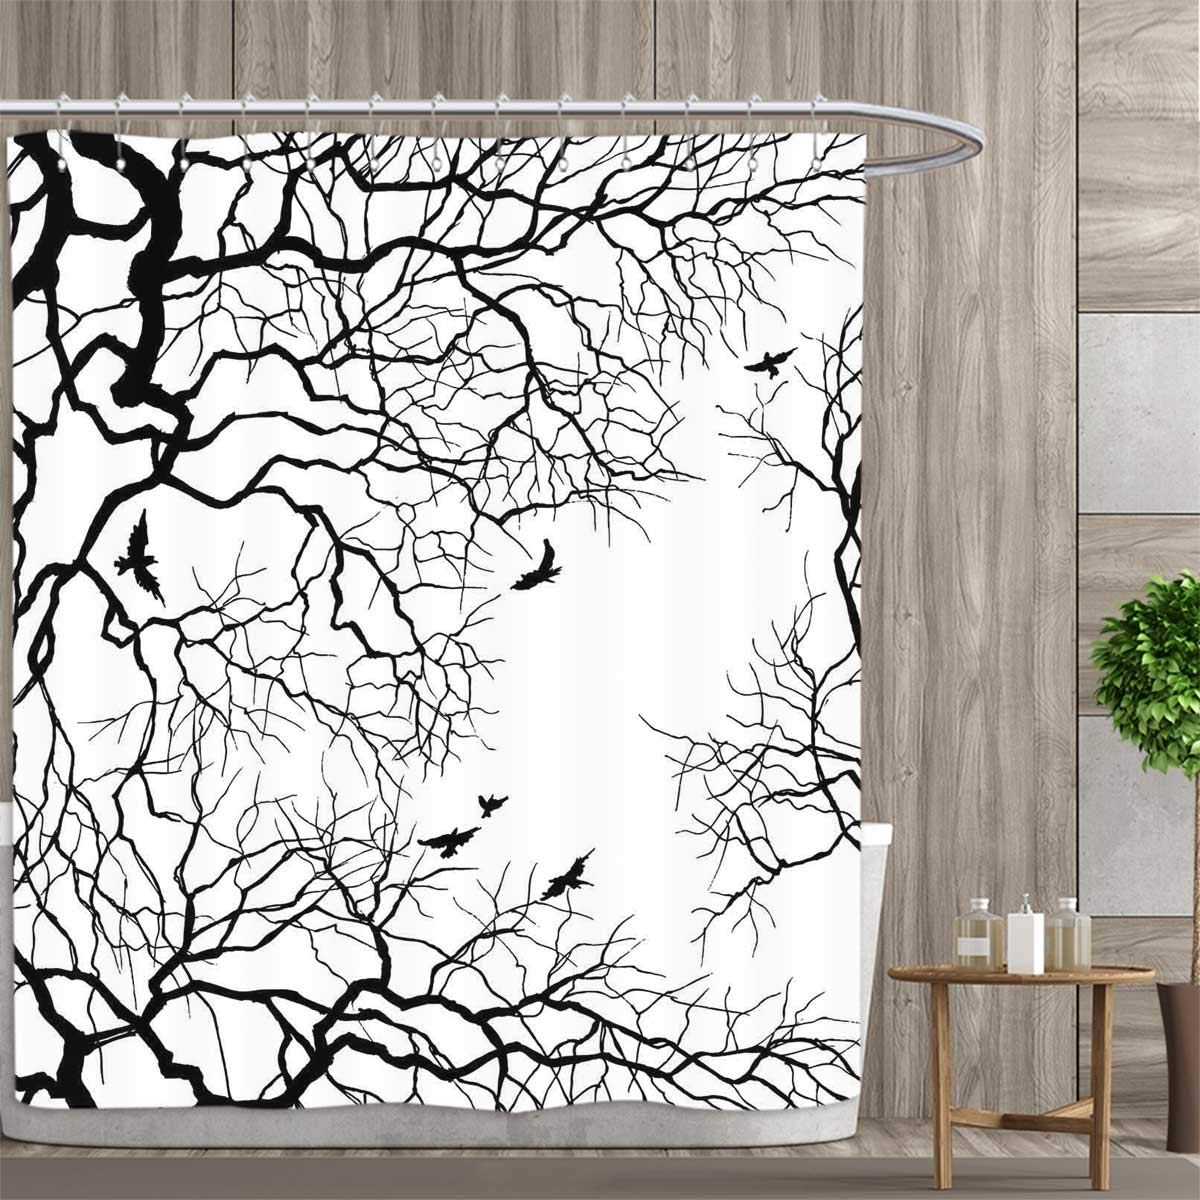 amazon anniutwo nature shower curtains digital printing birds 108 Wide Quilt Backing Fabric digital printing birds flying over twiggy tree branches stylish autumn season sky view artwork satin fabric bathroom washable 108 x72 black and white